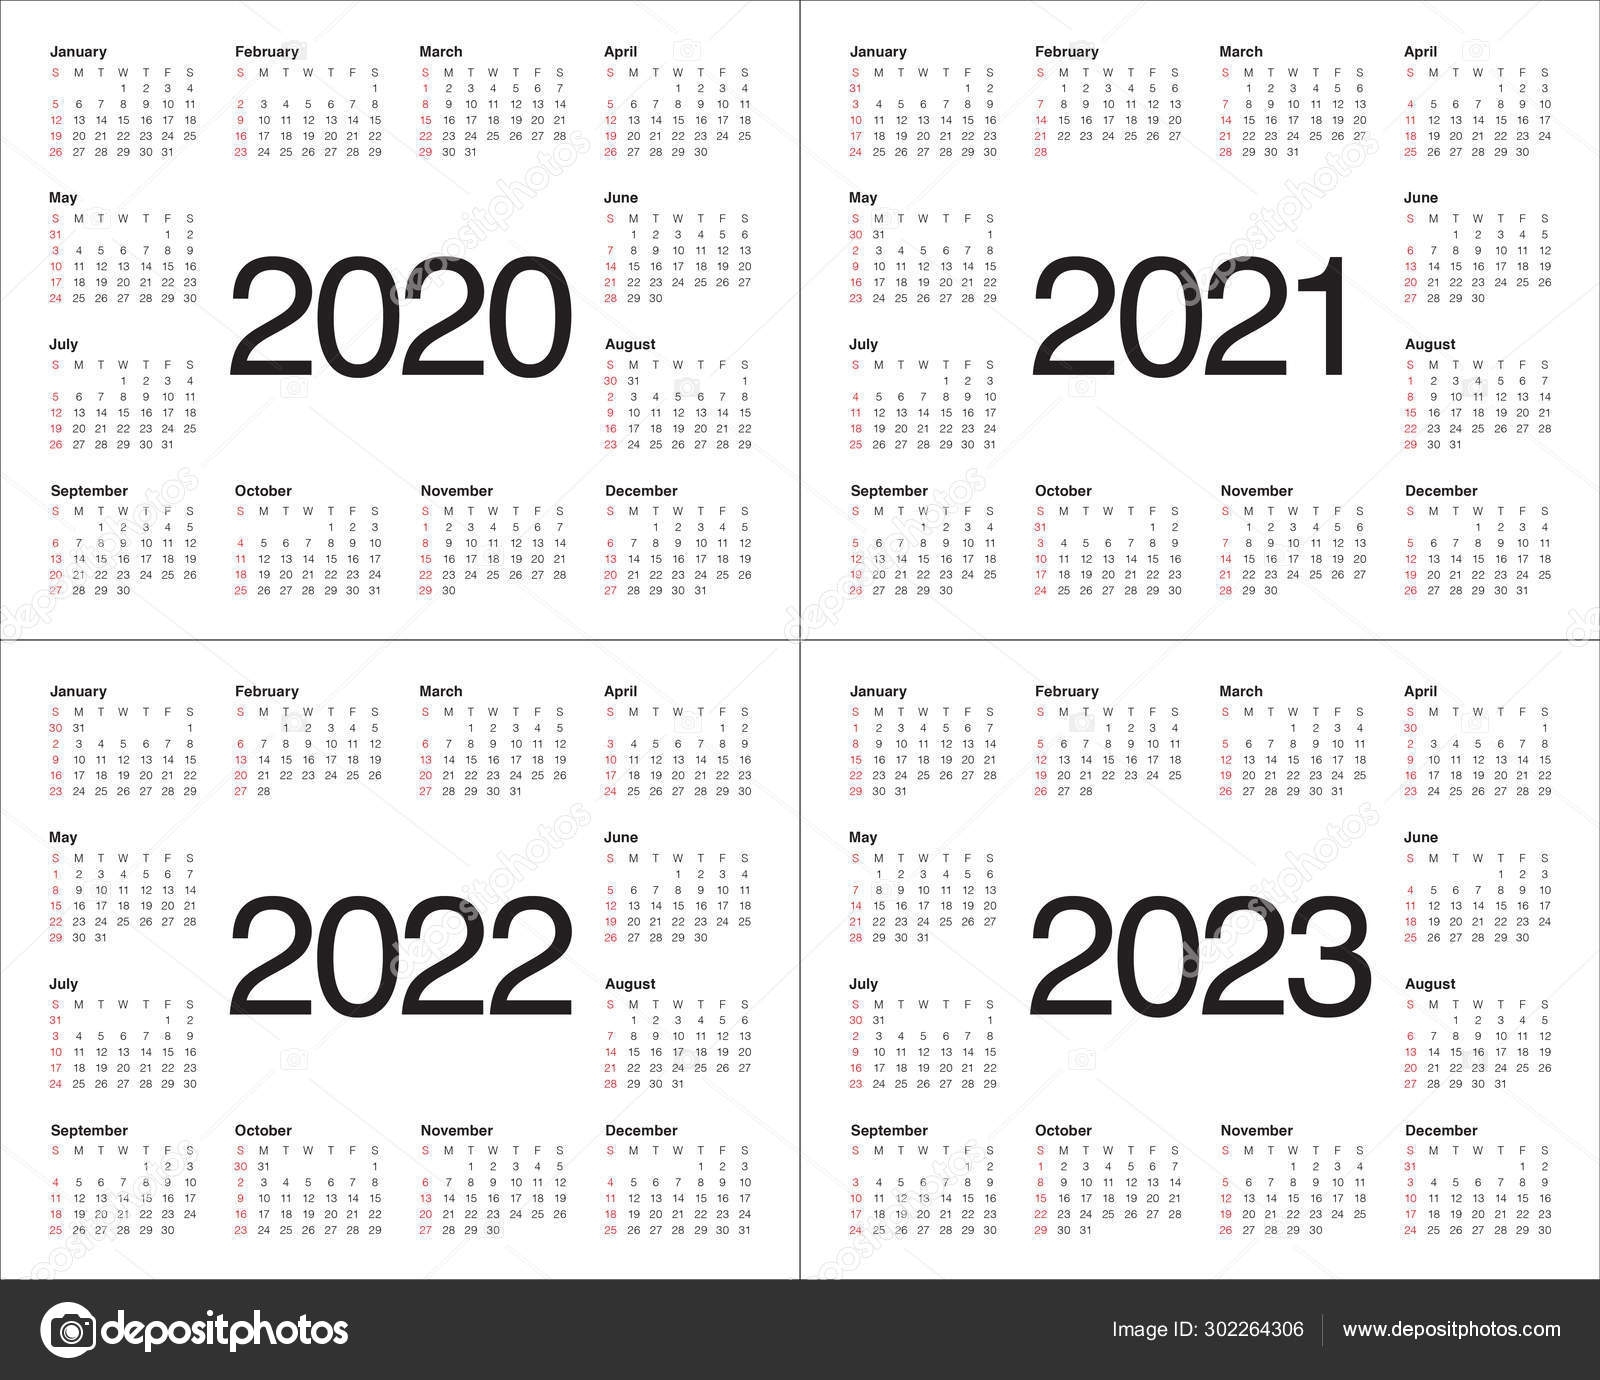 Year 2020 2021 2022 2023 Calendar Vector Design Template regarding Printable Calendar 2020 2021 2022 2023